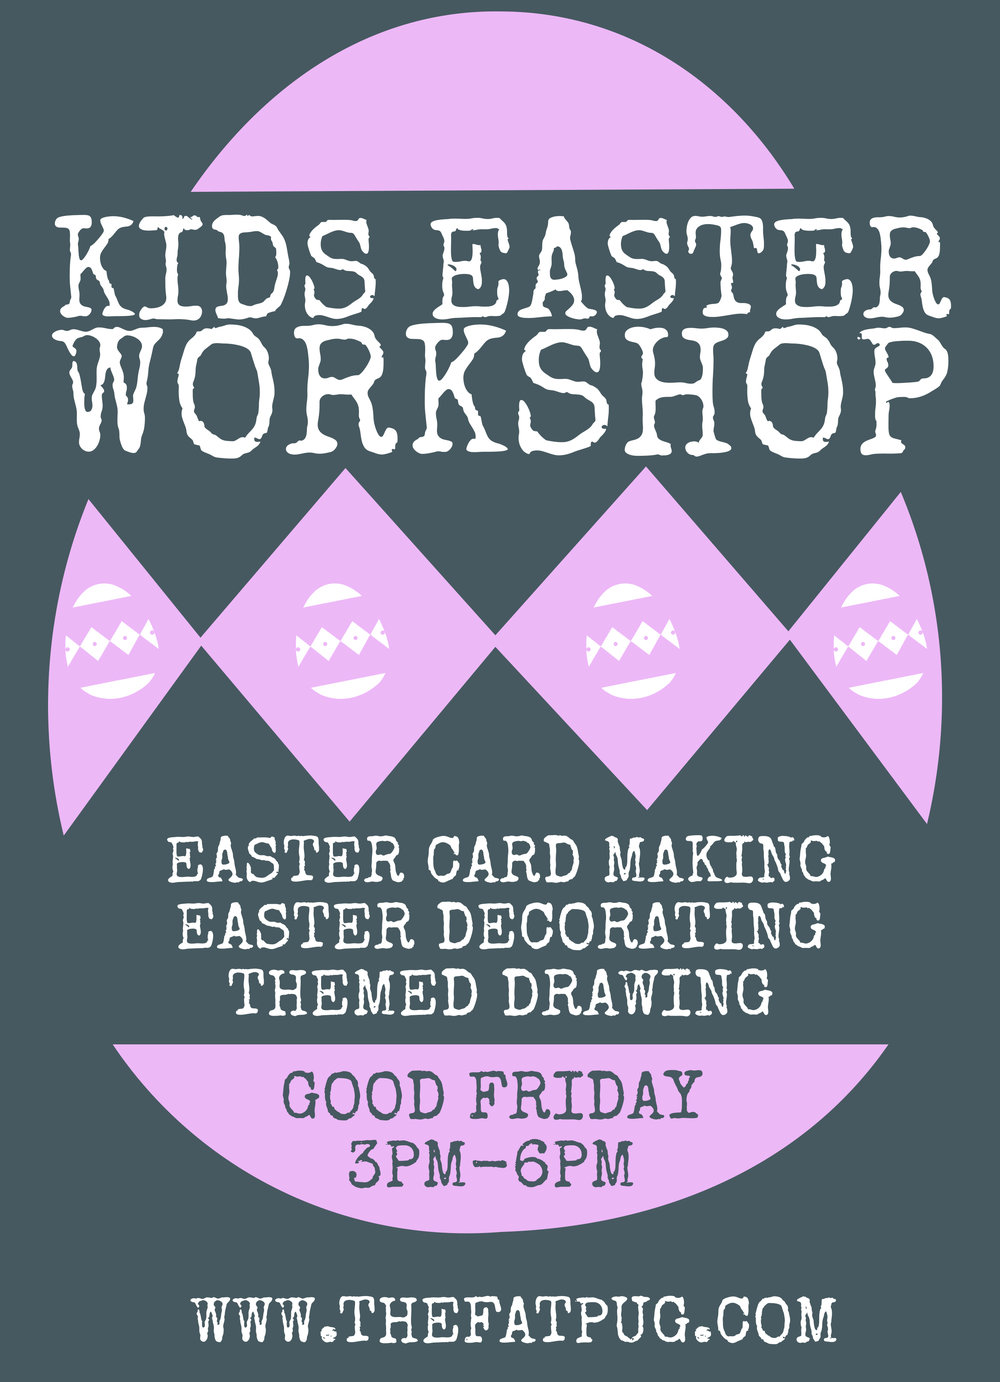 Easter Work shop.jpg